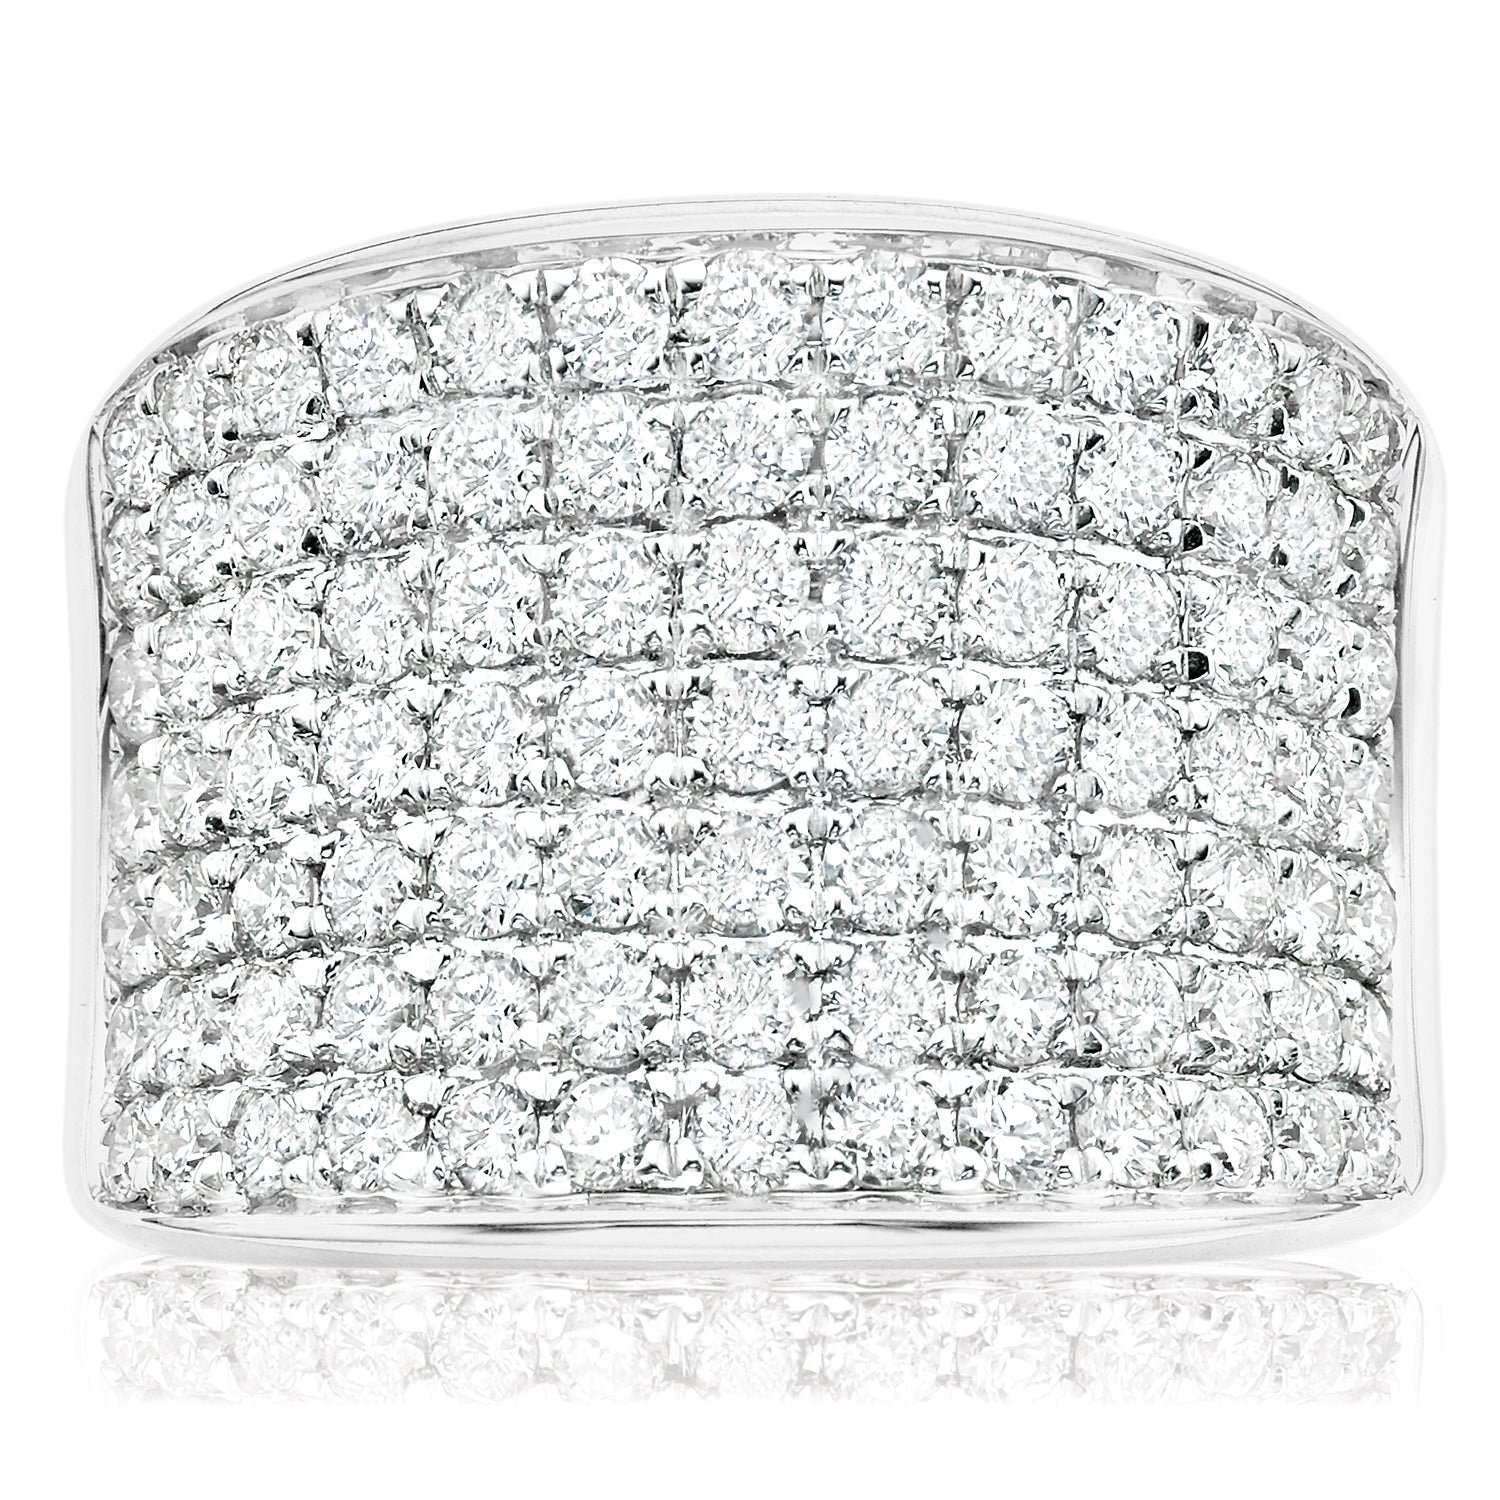 9ct White Gold Round Brilliant Cut with 2 CARAT tw of Diamonds